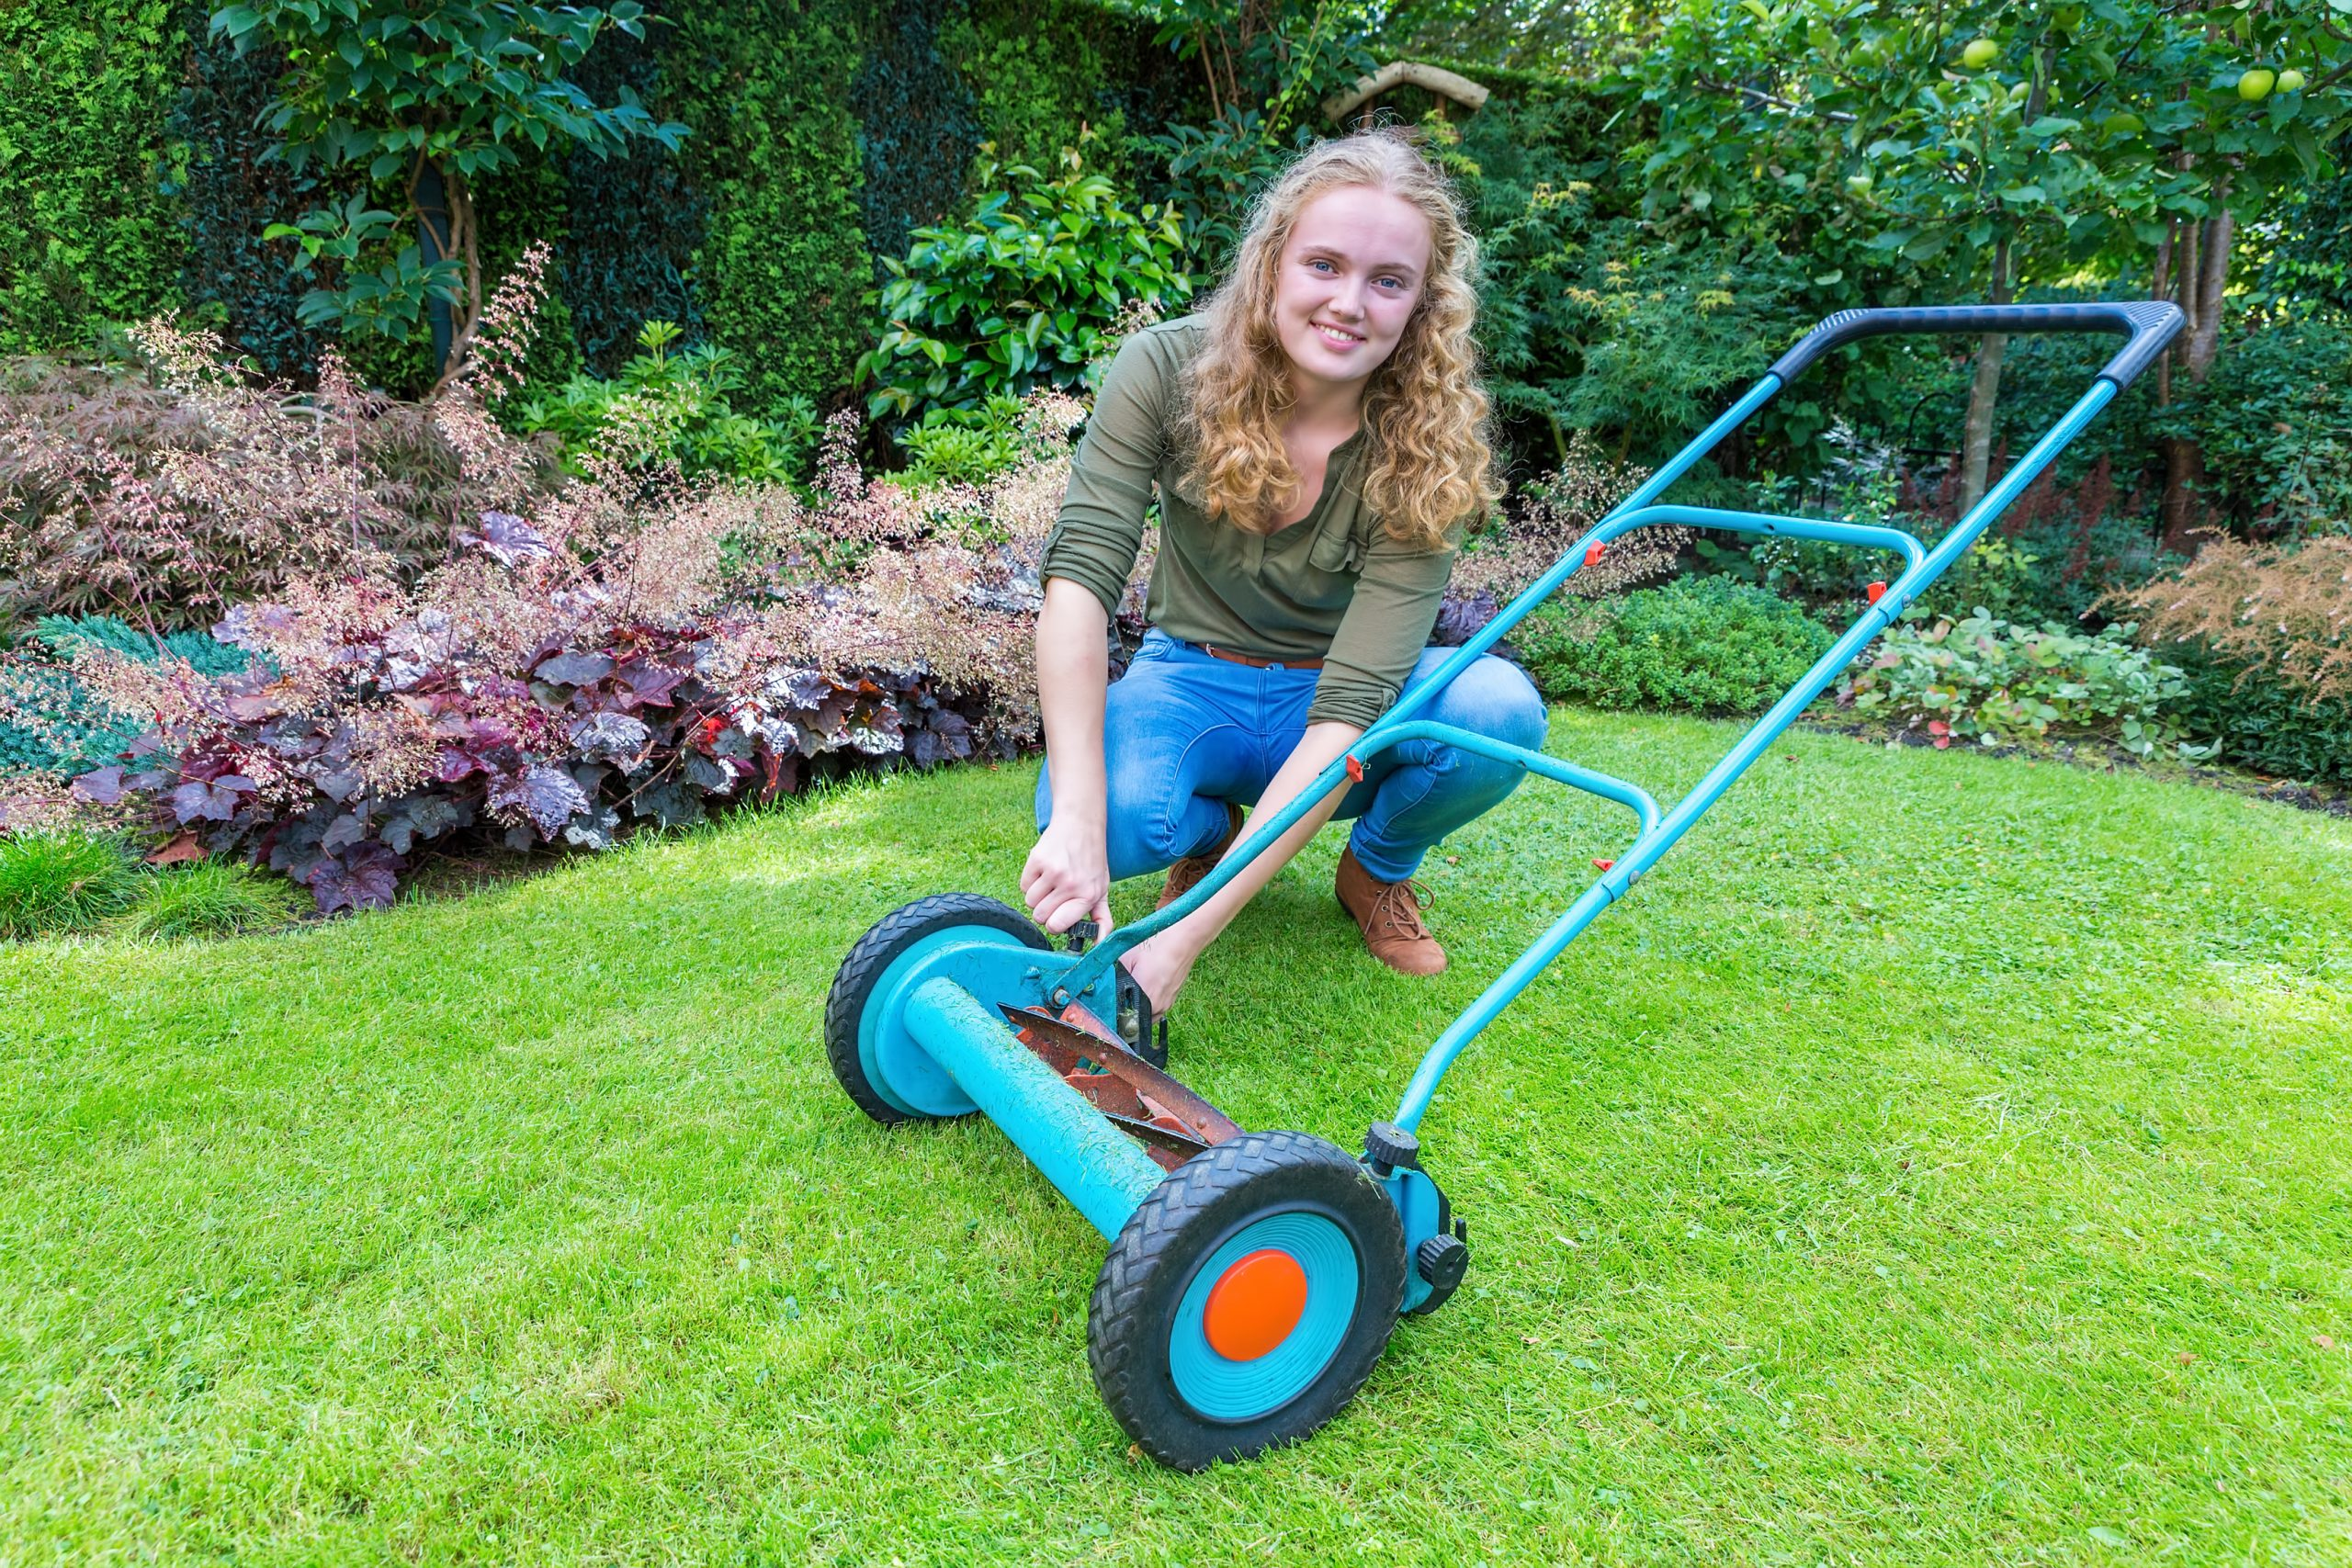 Teenager Lawn Care Business Insurance Coverage with BSMW